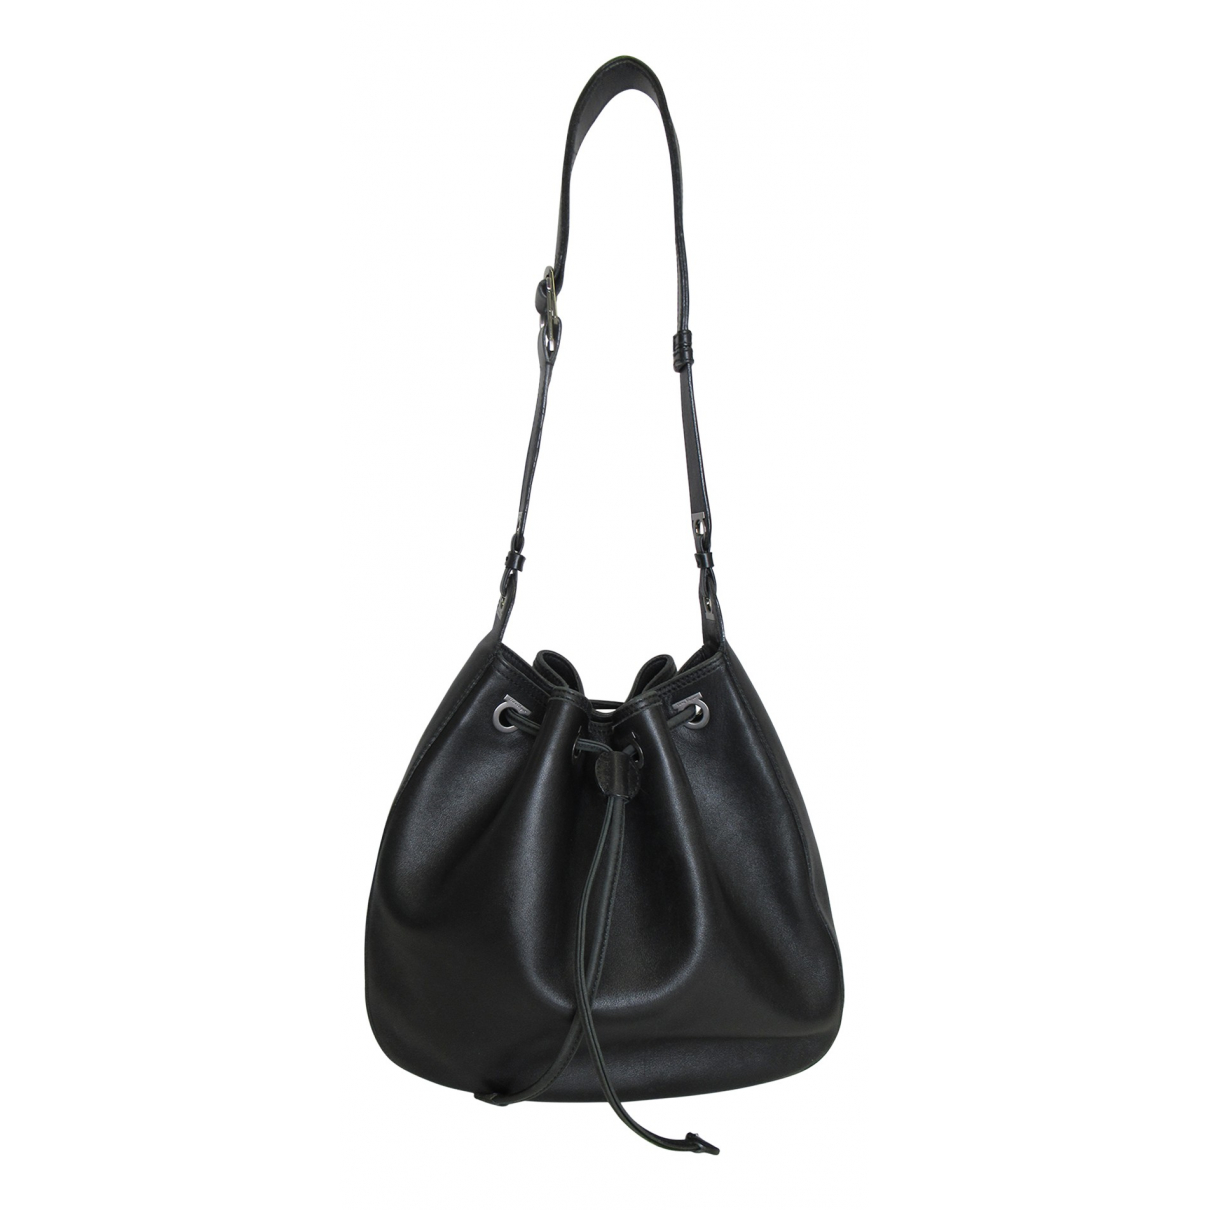 Salvatore Ferragamo N Black Leather handbag for Women N